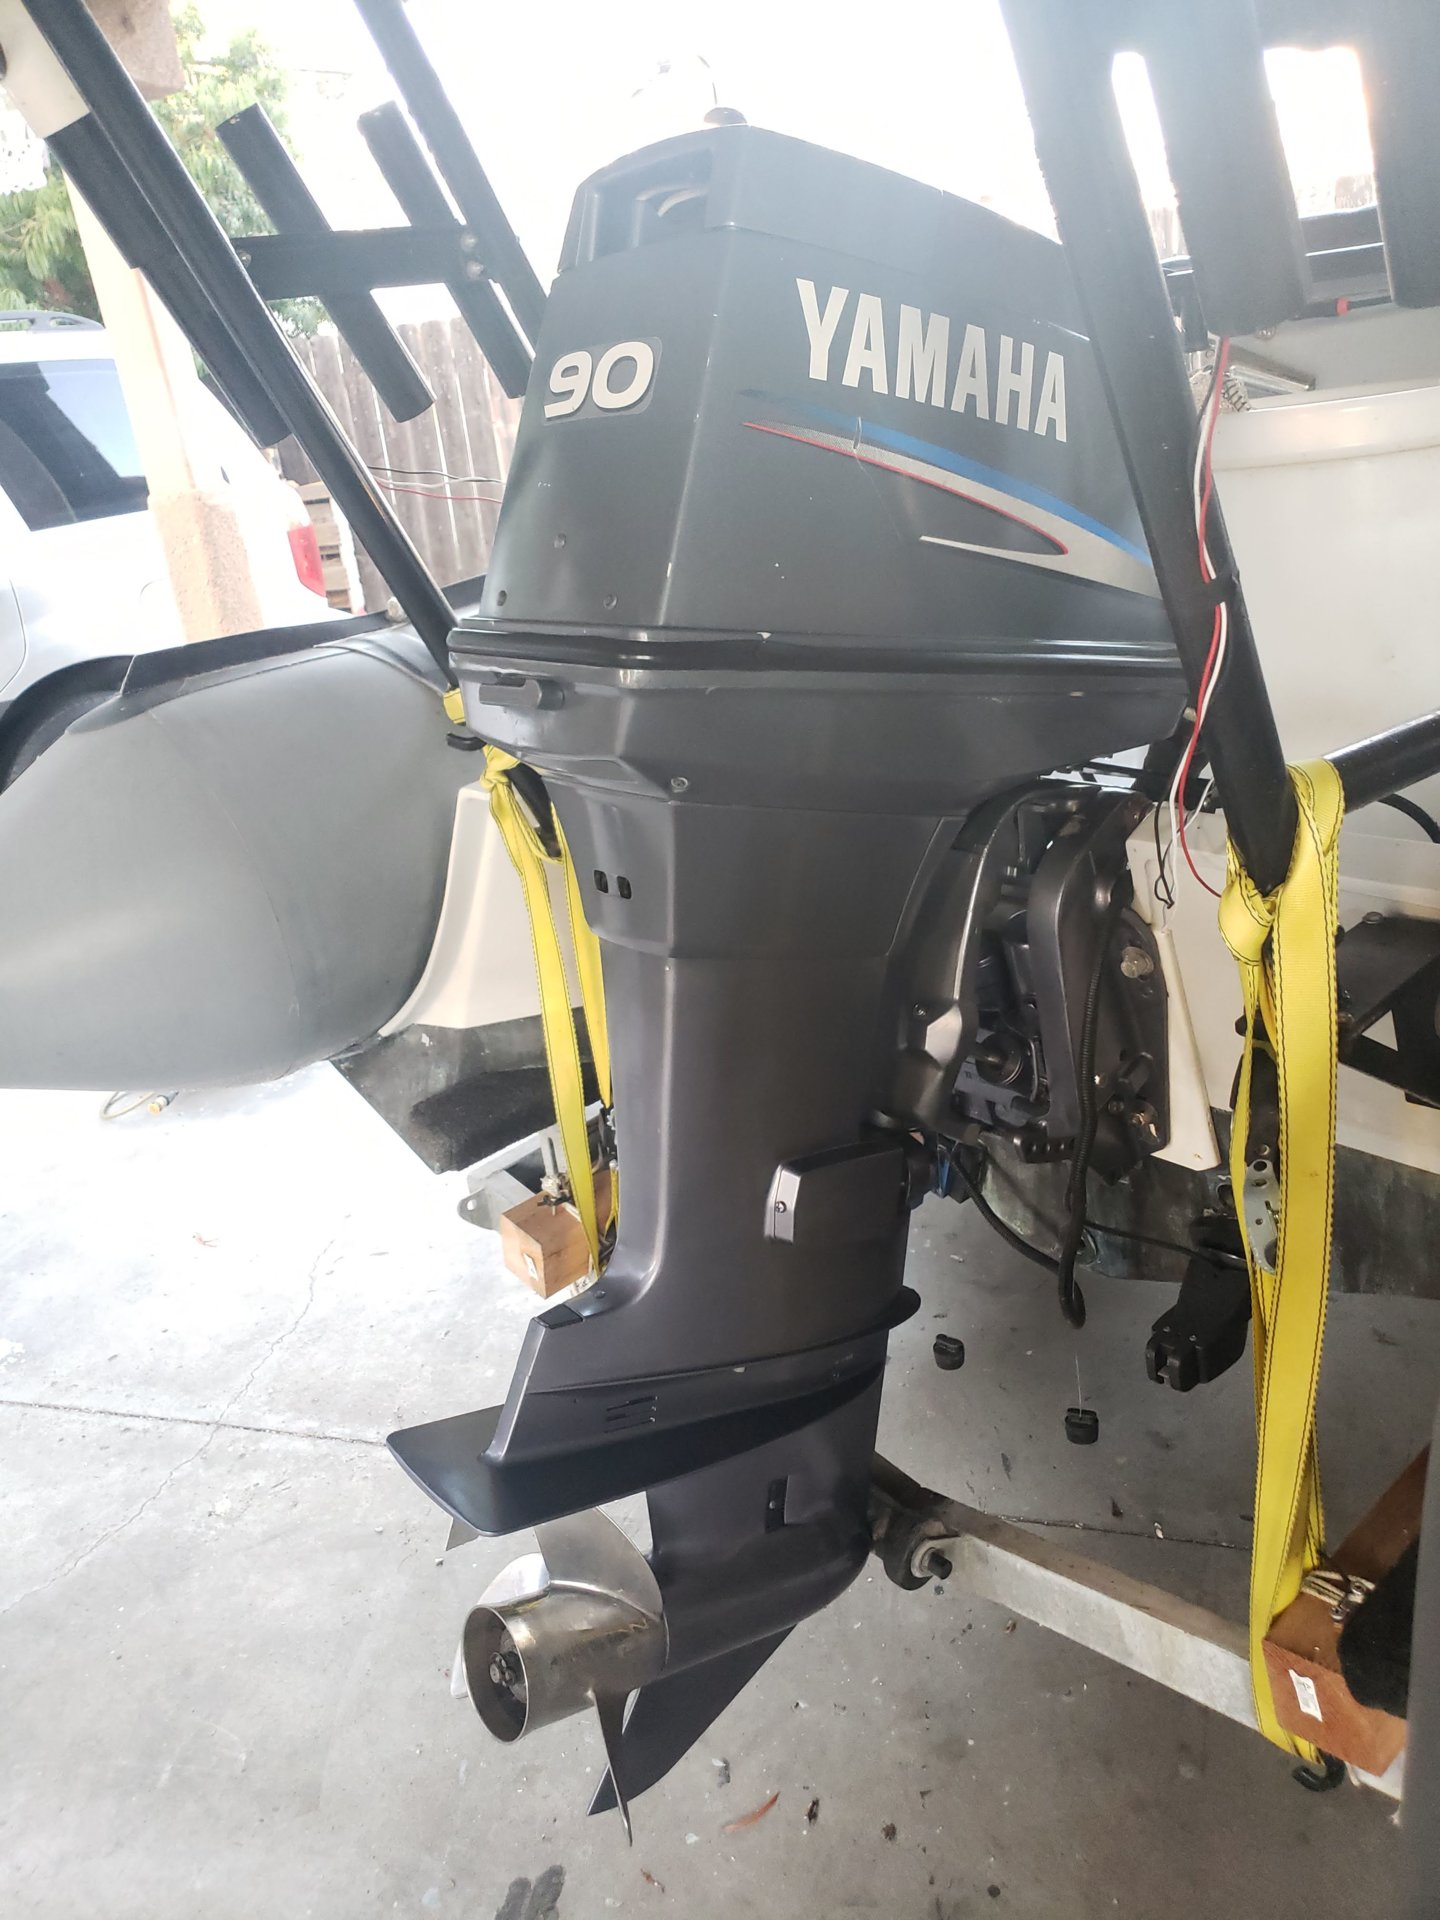 For Sale - Yamaha Outboard motor 90HP with all wiring